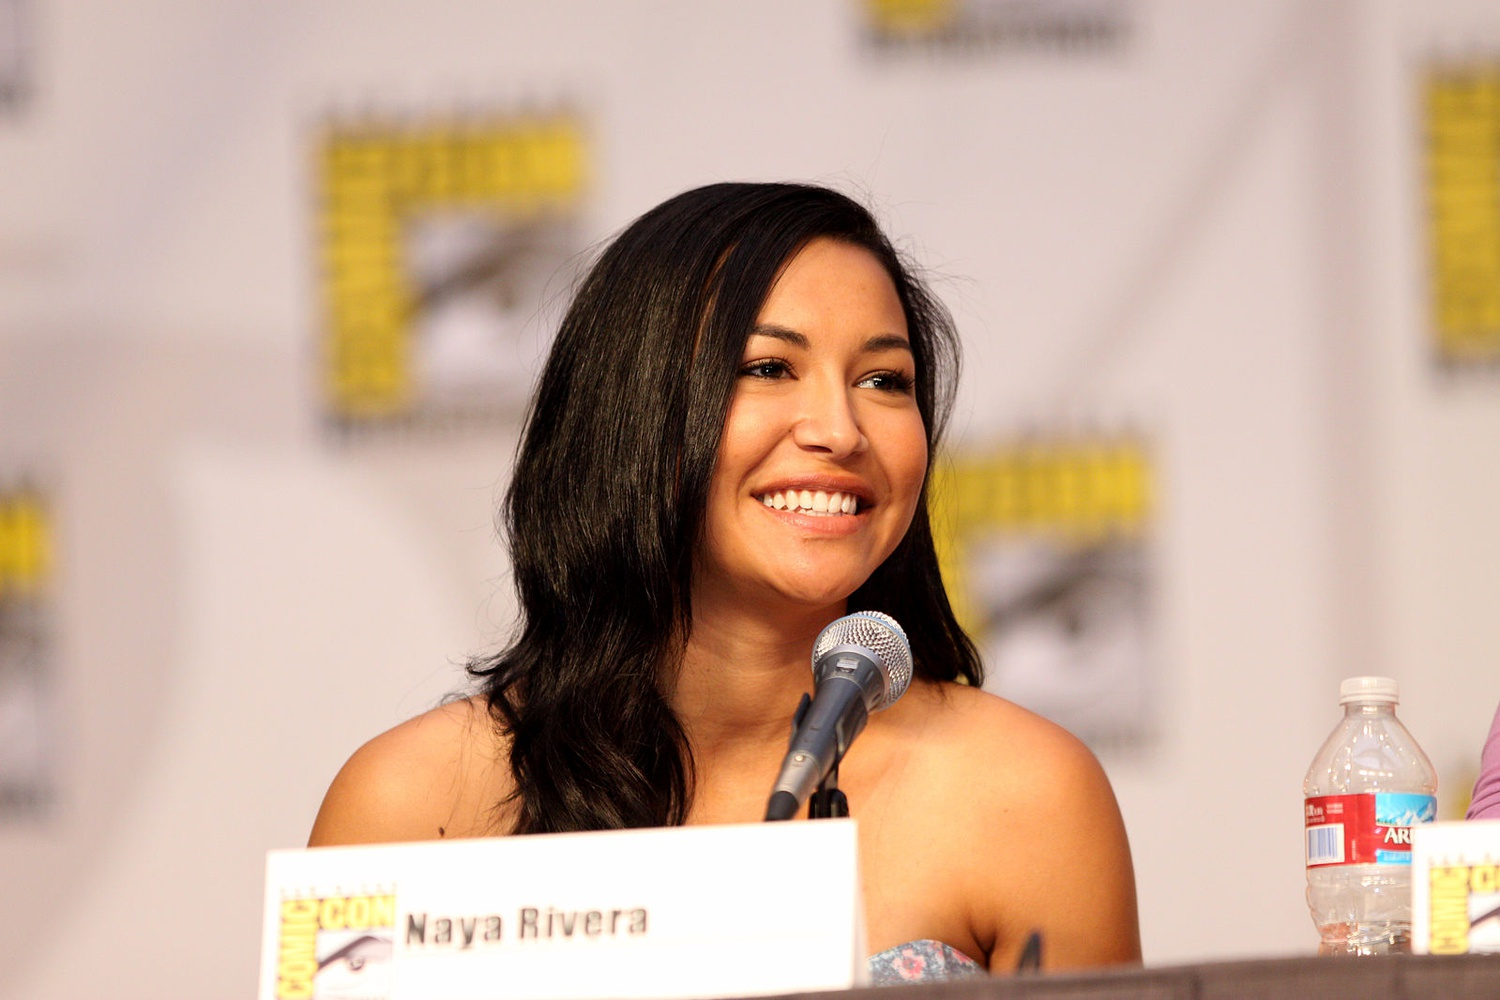 Naya Rivera passed away in July at the age of 33.